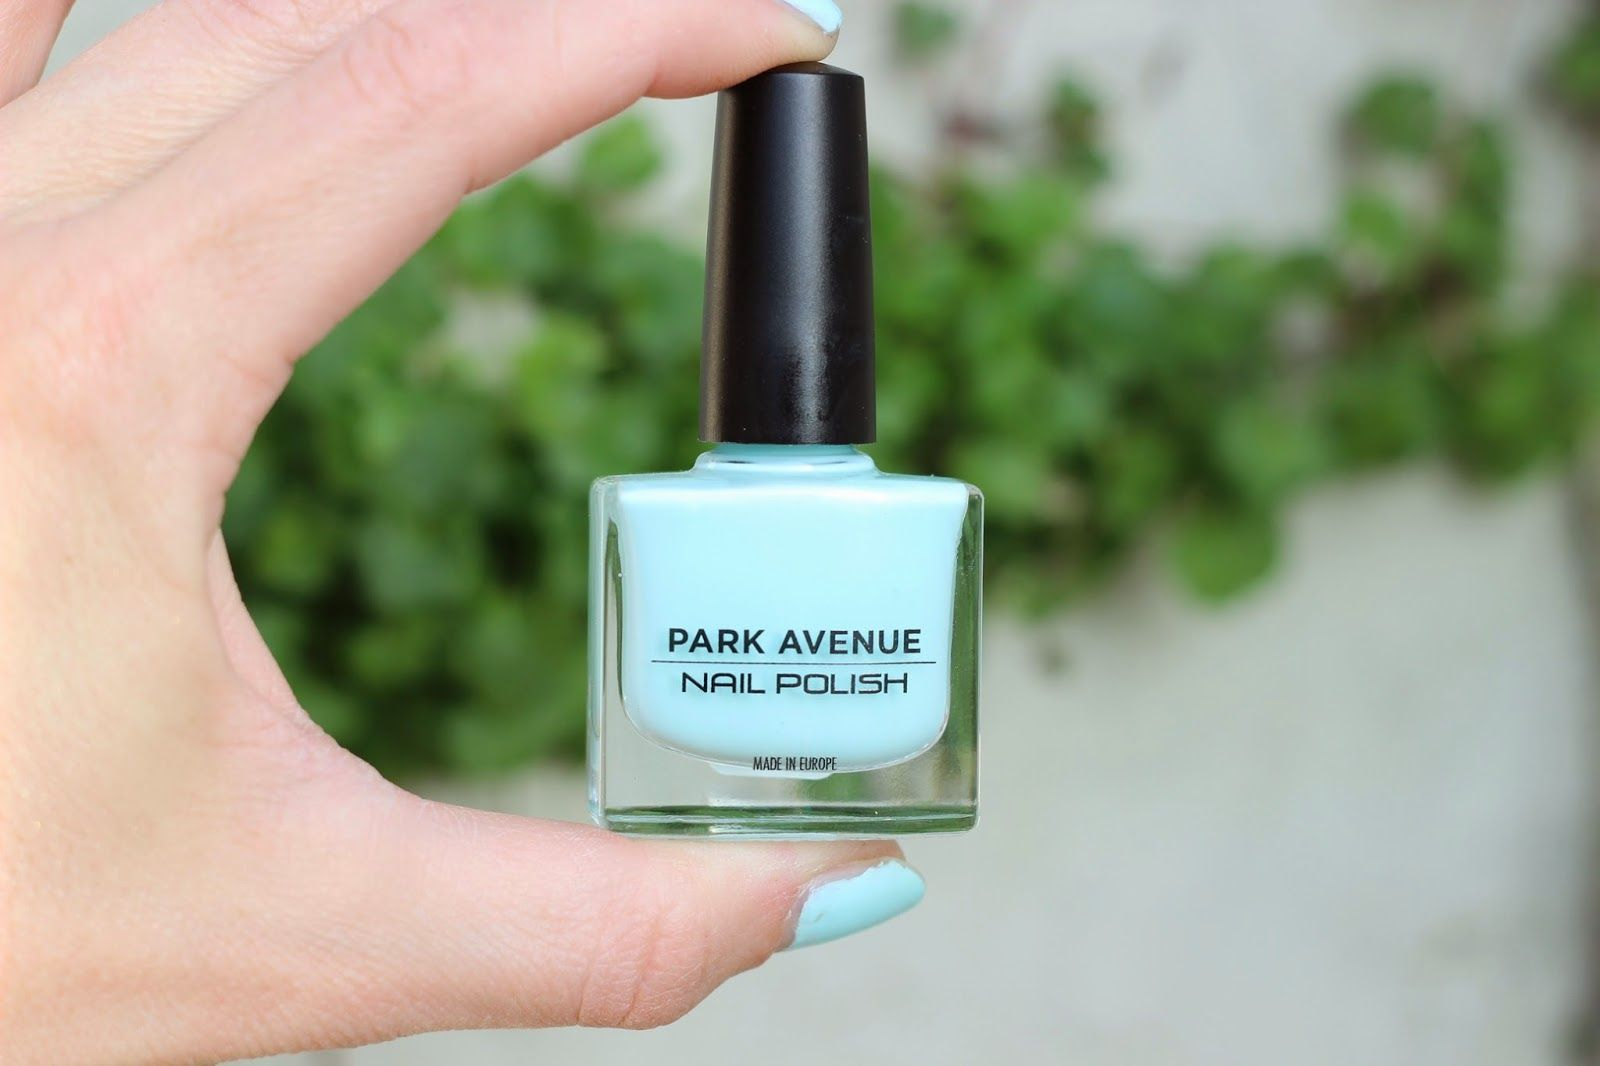 Sprinkles on a cupcake: Park Avenue - Delicate pastel blue nail polish